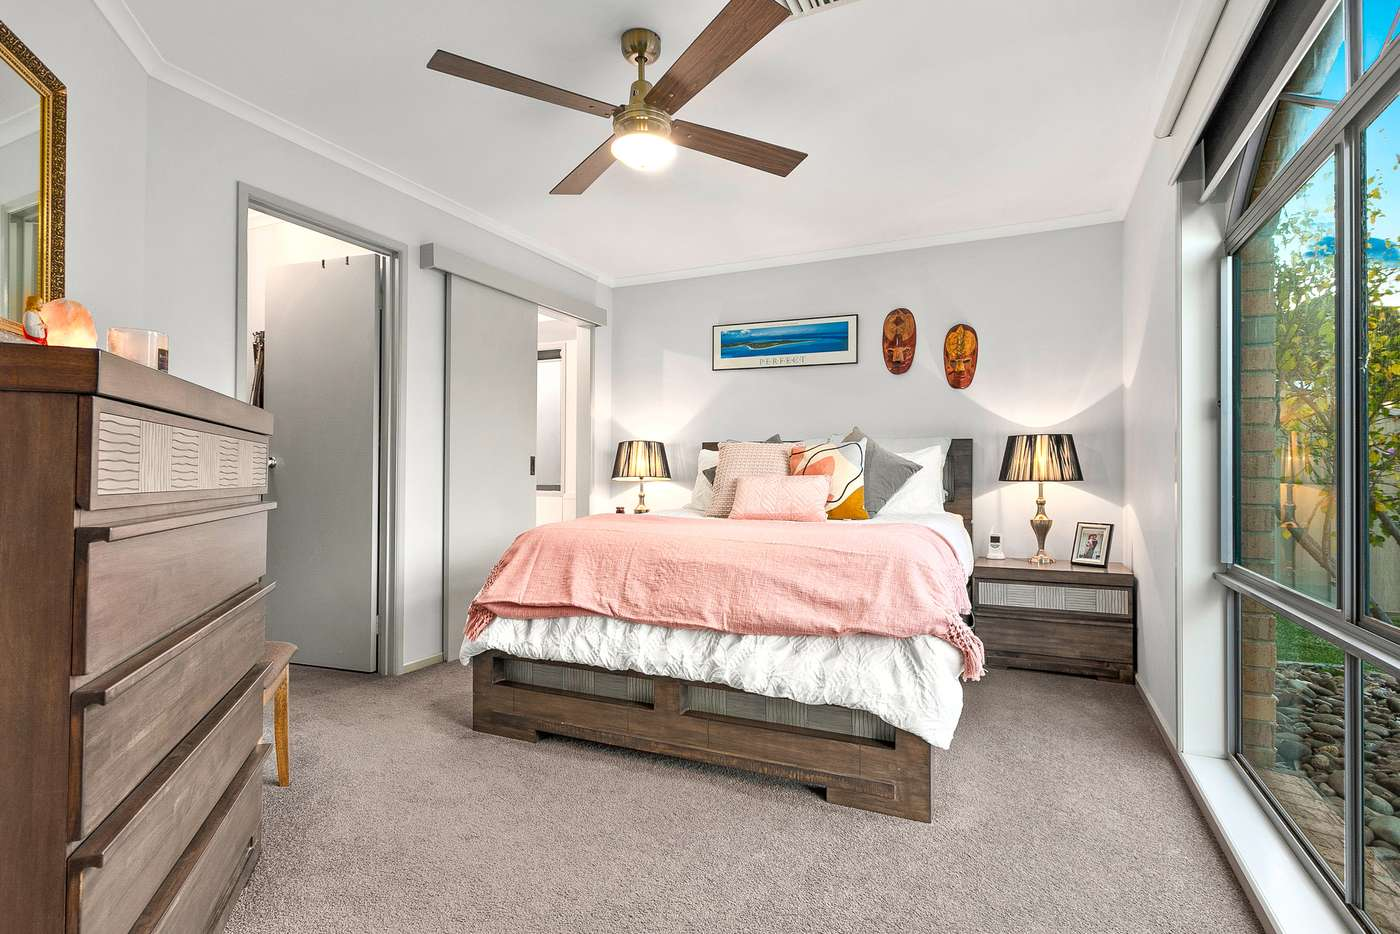 Fifth view of Homely house listing, 3 Eleanore Crescent, Hallam VIC 3803